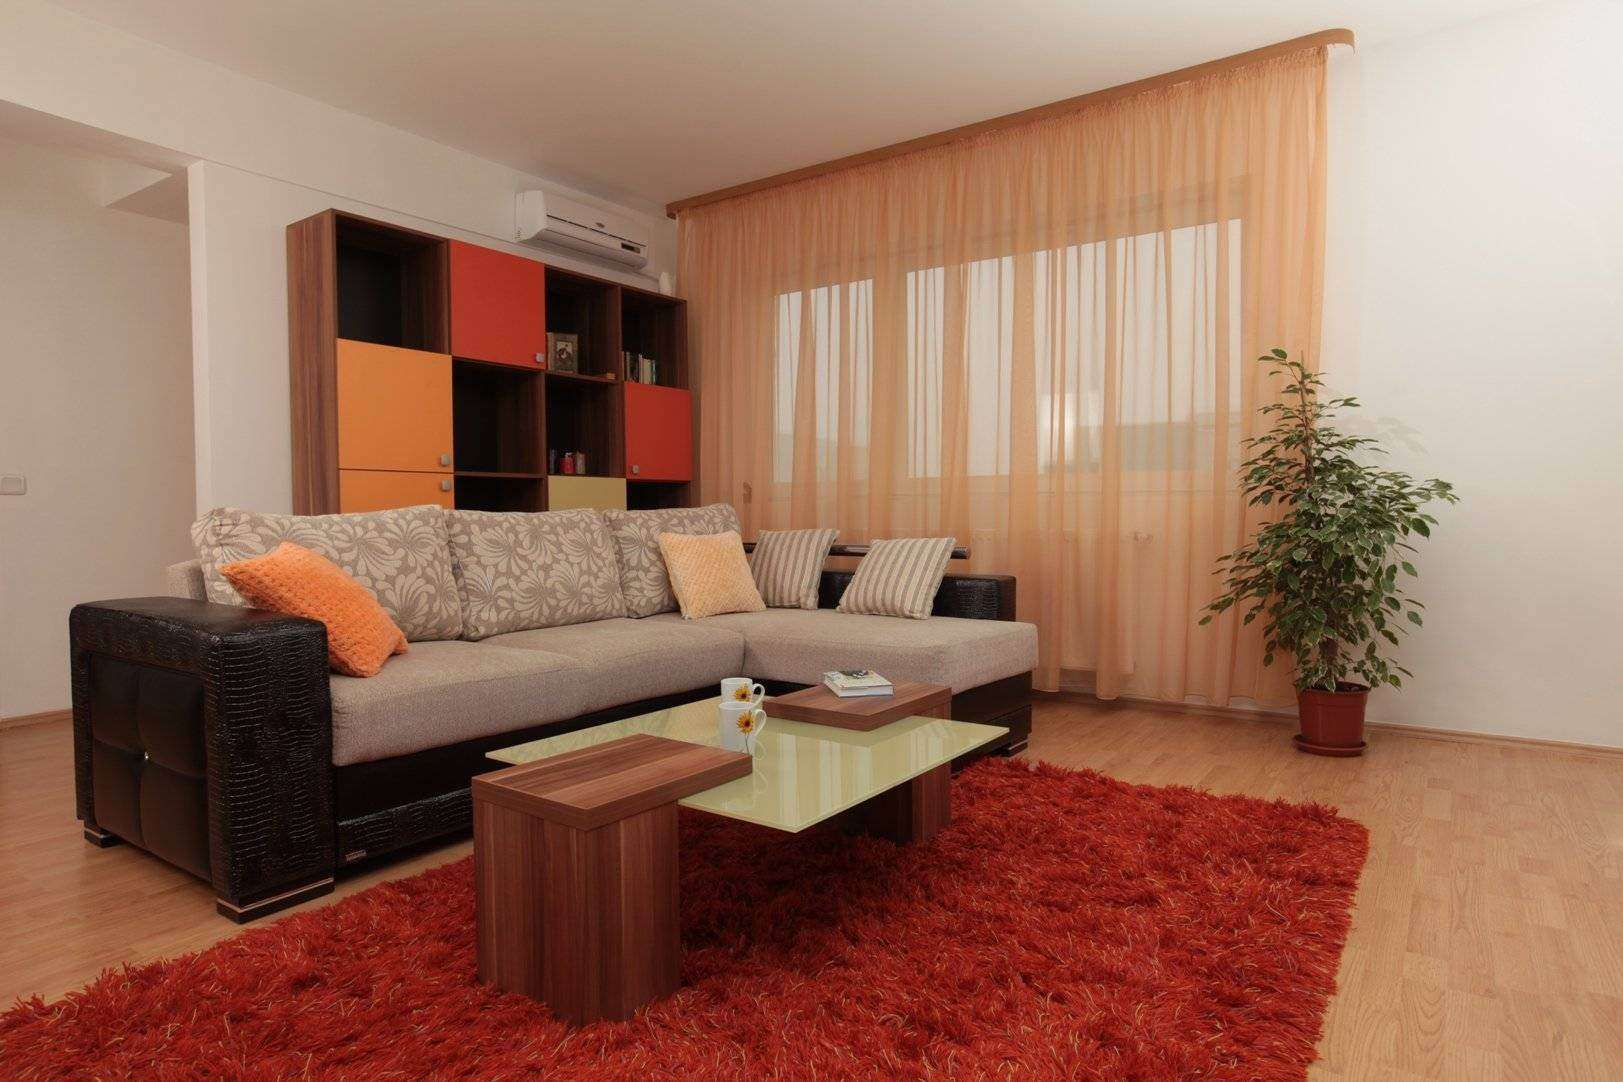 <a href=&quot;coltar living extensibil unican&quot;>coltar living extensibil moder <img src='http://www.unican.ro/wp-content/themes/vita/img/dreapta.png' class='pull-right hidden-xs' style='margin-right:-10px;margin-top:-10px; max-height:41px'></a>